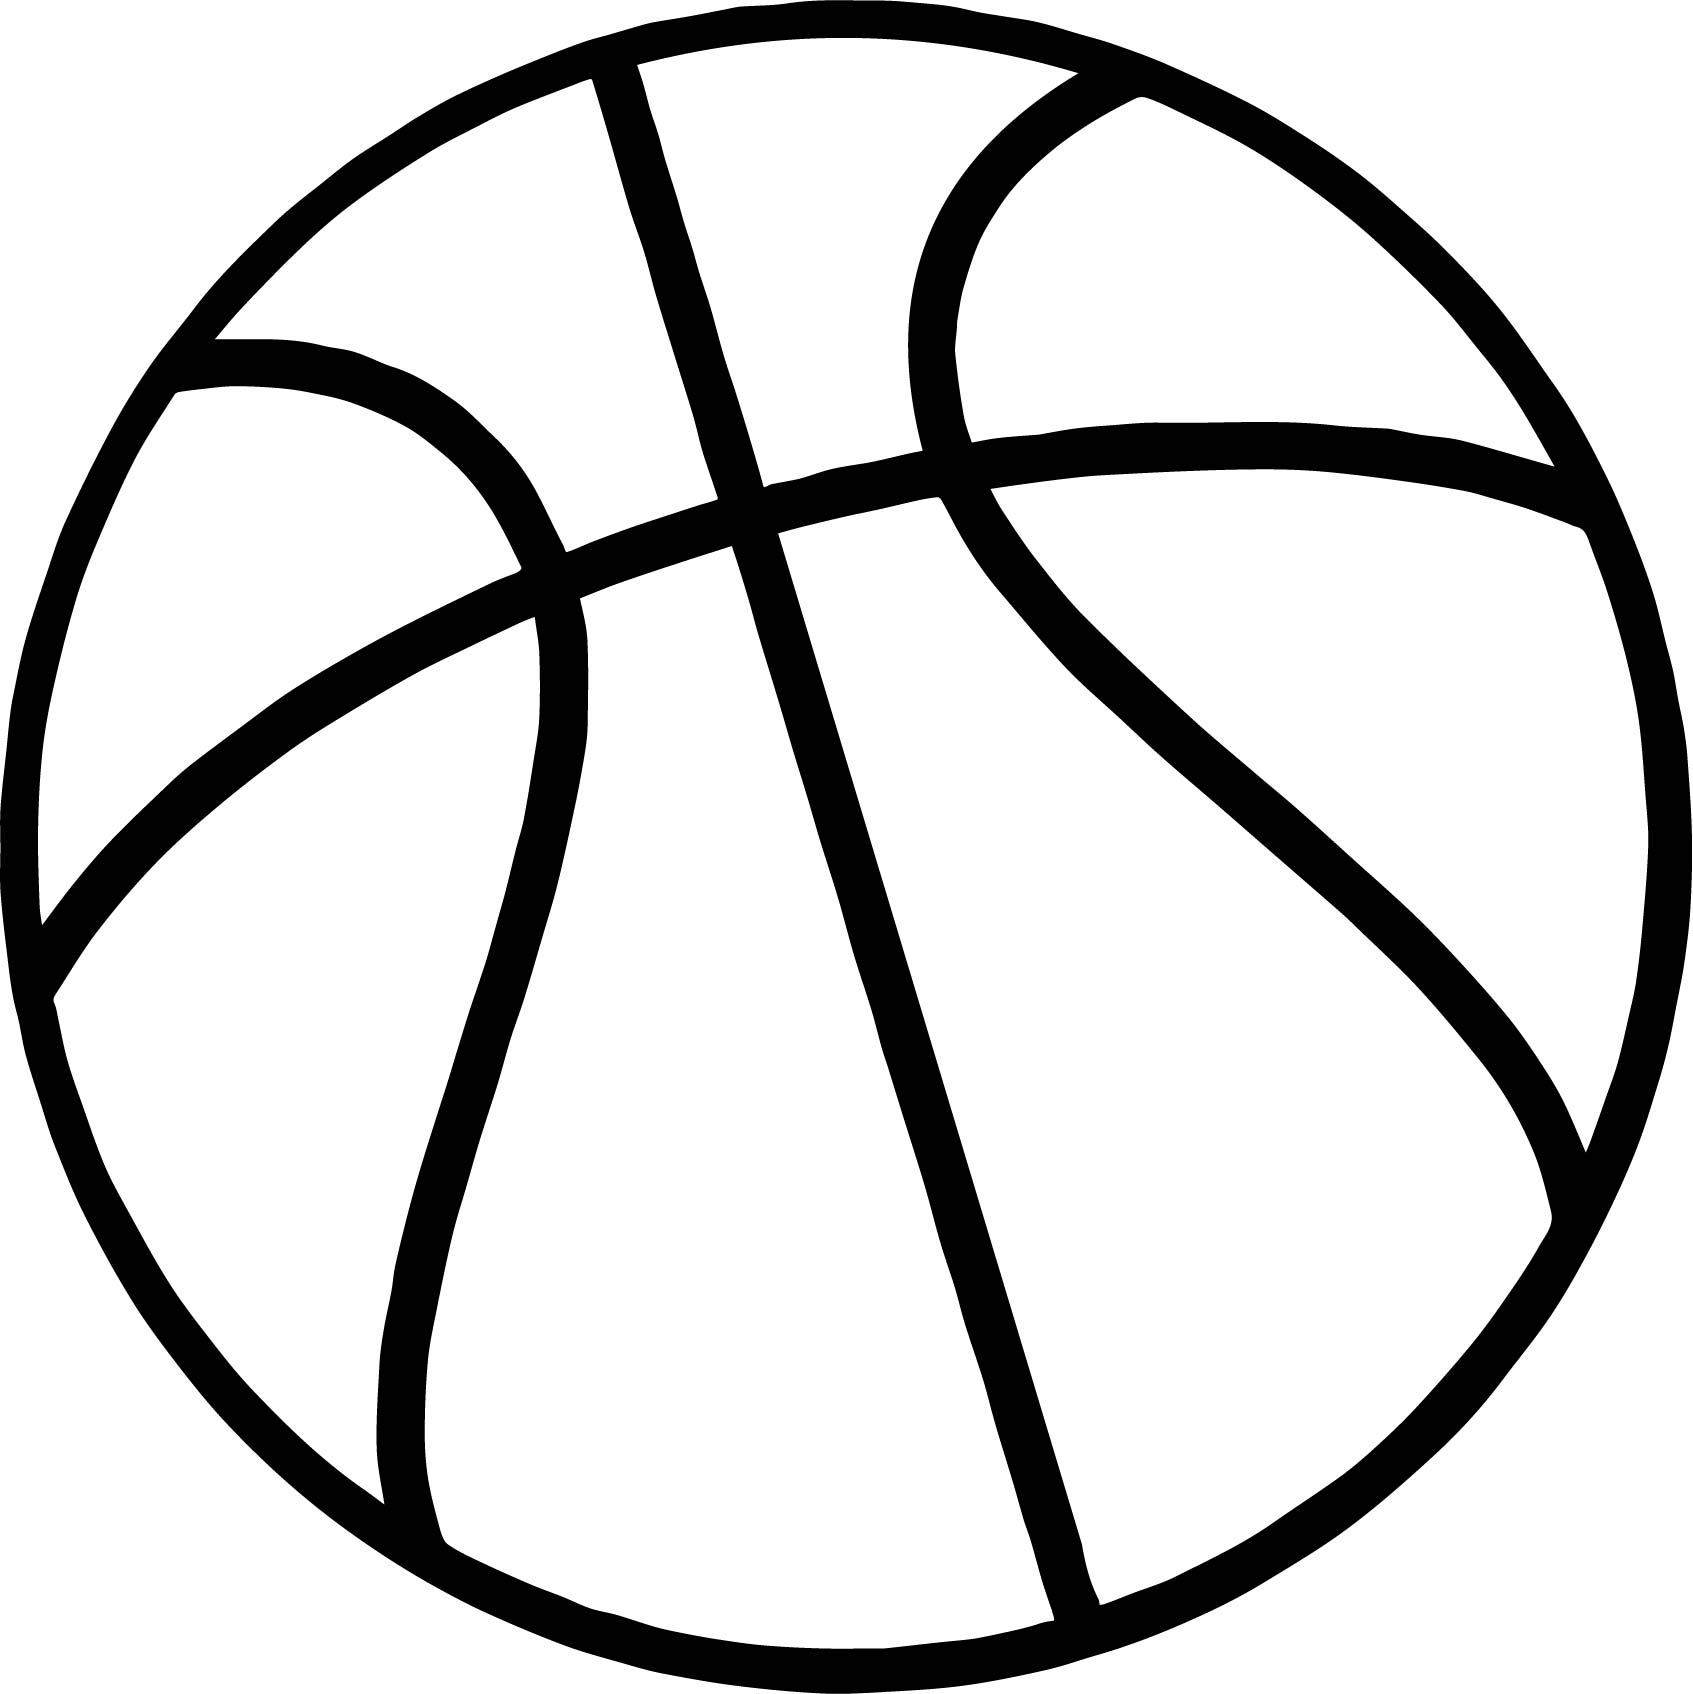 Marvelous Image Of Ball Coloring Pages Davemelillorhdavemelillo: Coloring Pages Of Basketball Ball At Baymontmadison.com